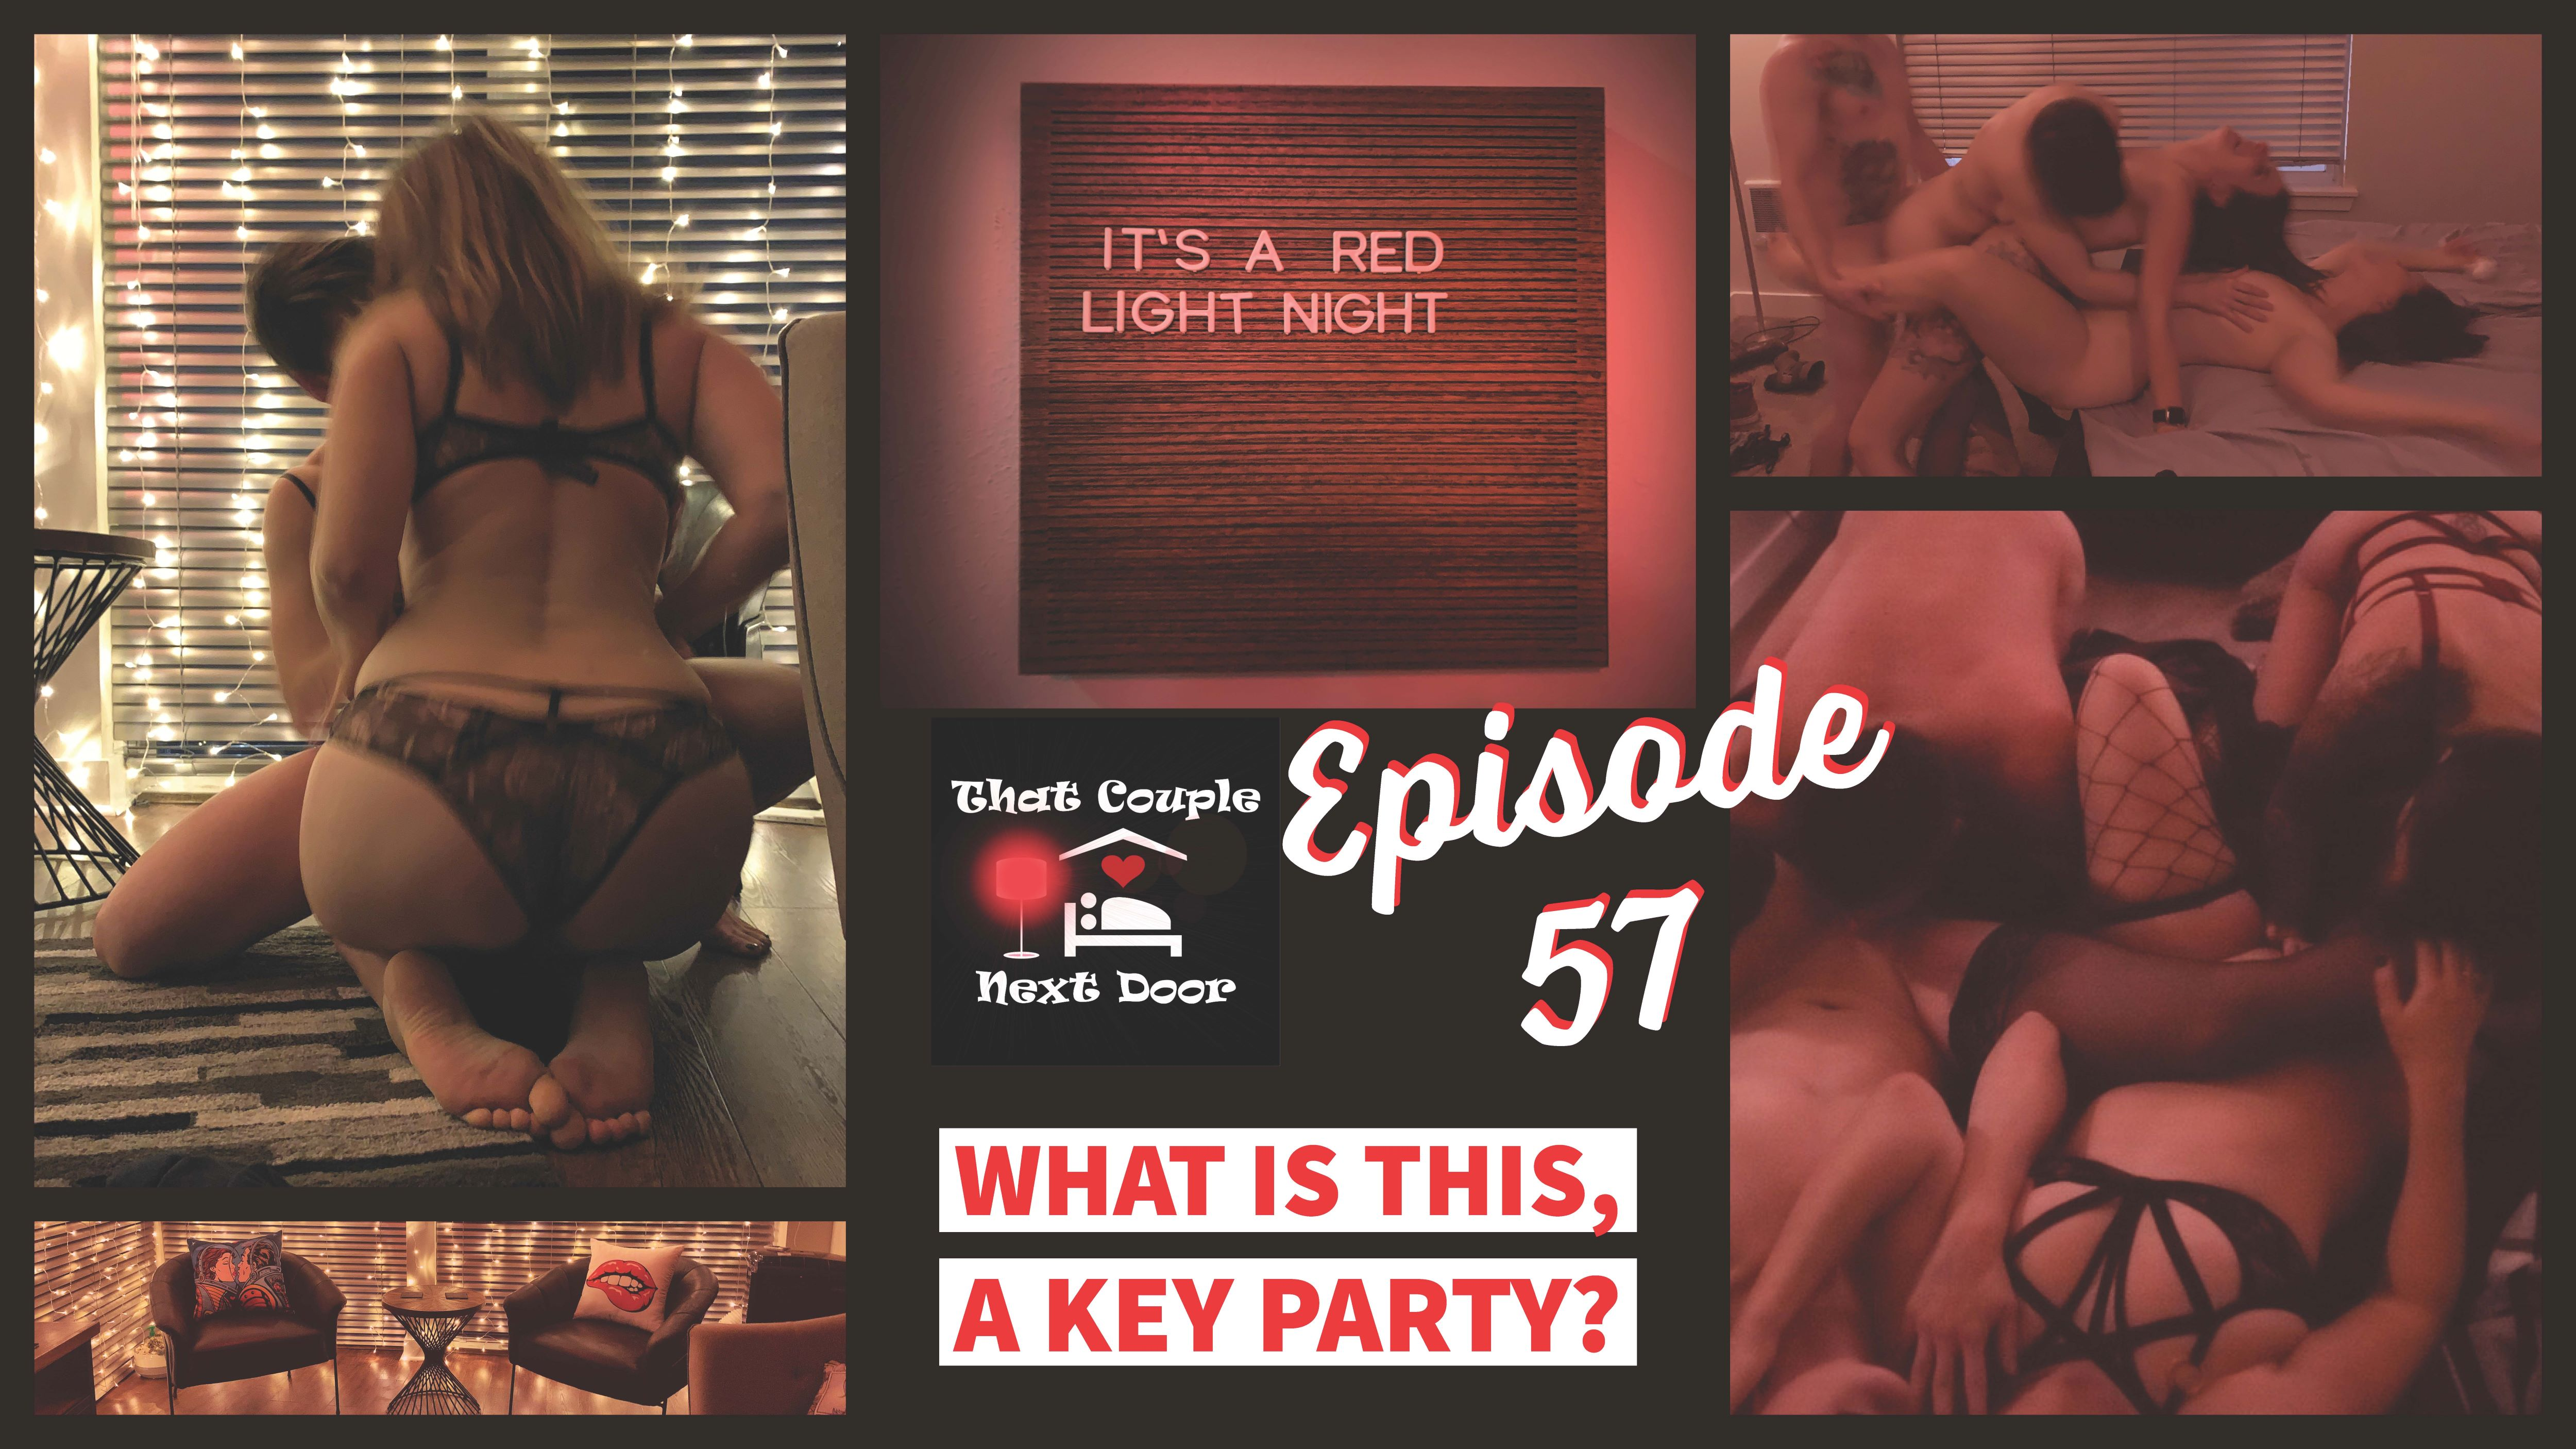 Episode 57 - What is this, a Key Party?